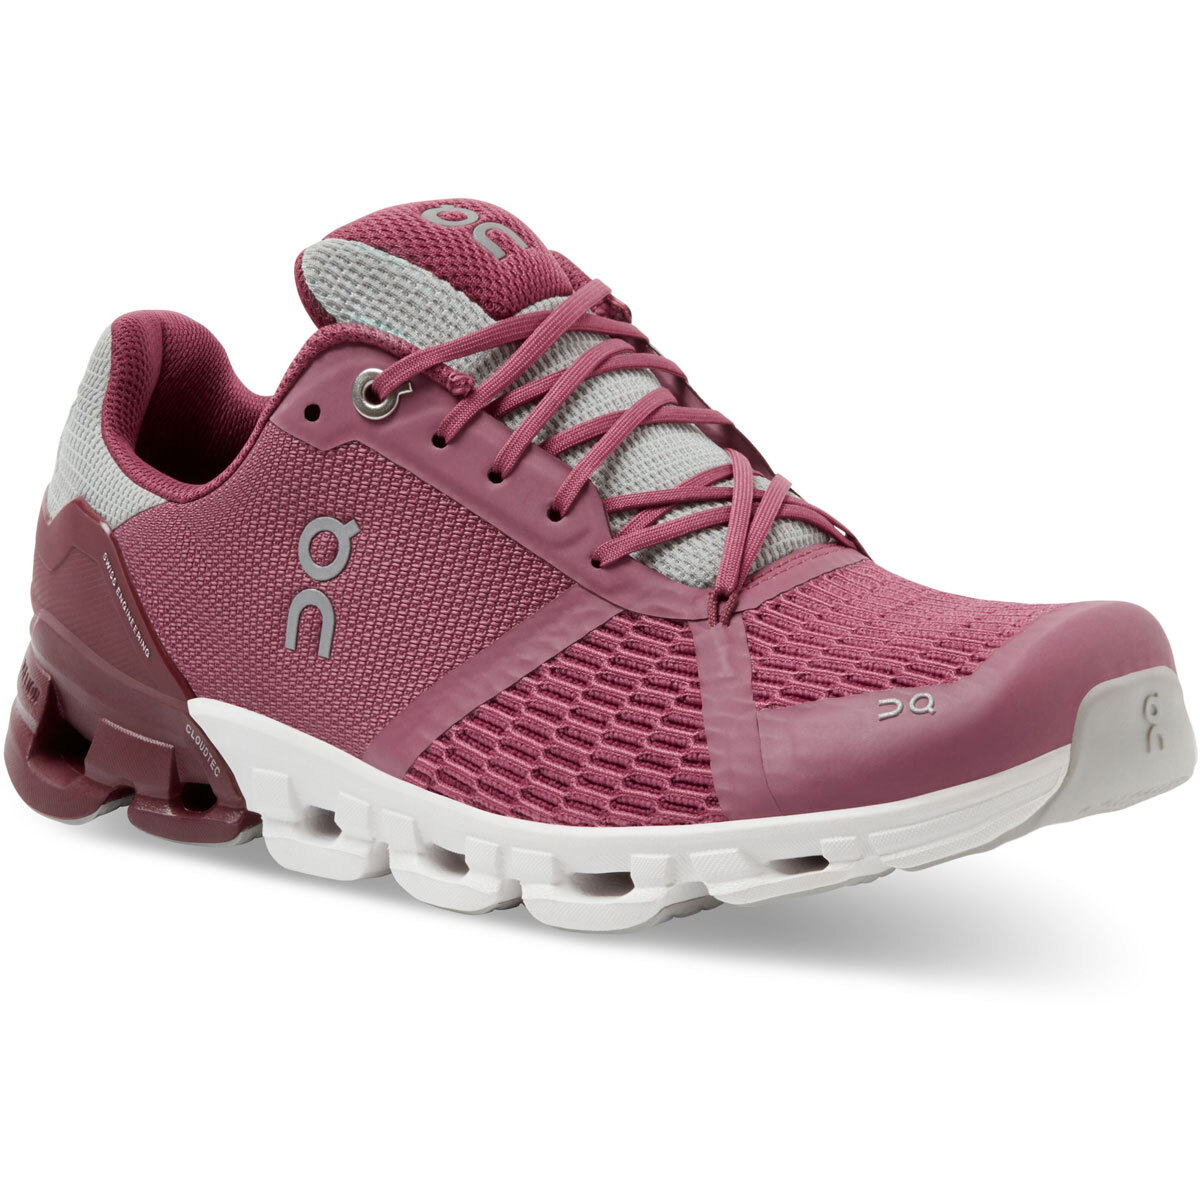 Women's On Cloudflyer 2.0 Running Shoe - Color: Magenta/Mulberry - Size: 5 - Width: Regular, Magenta/Mulberry, large, image 2